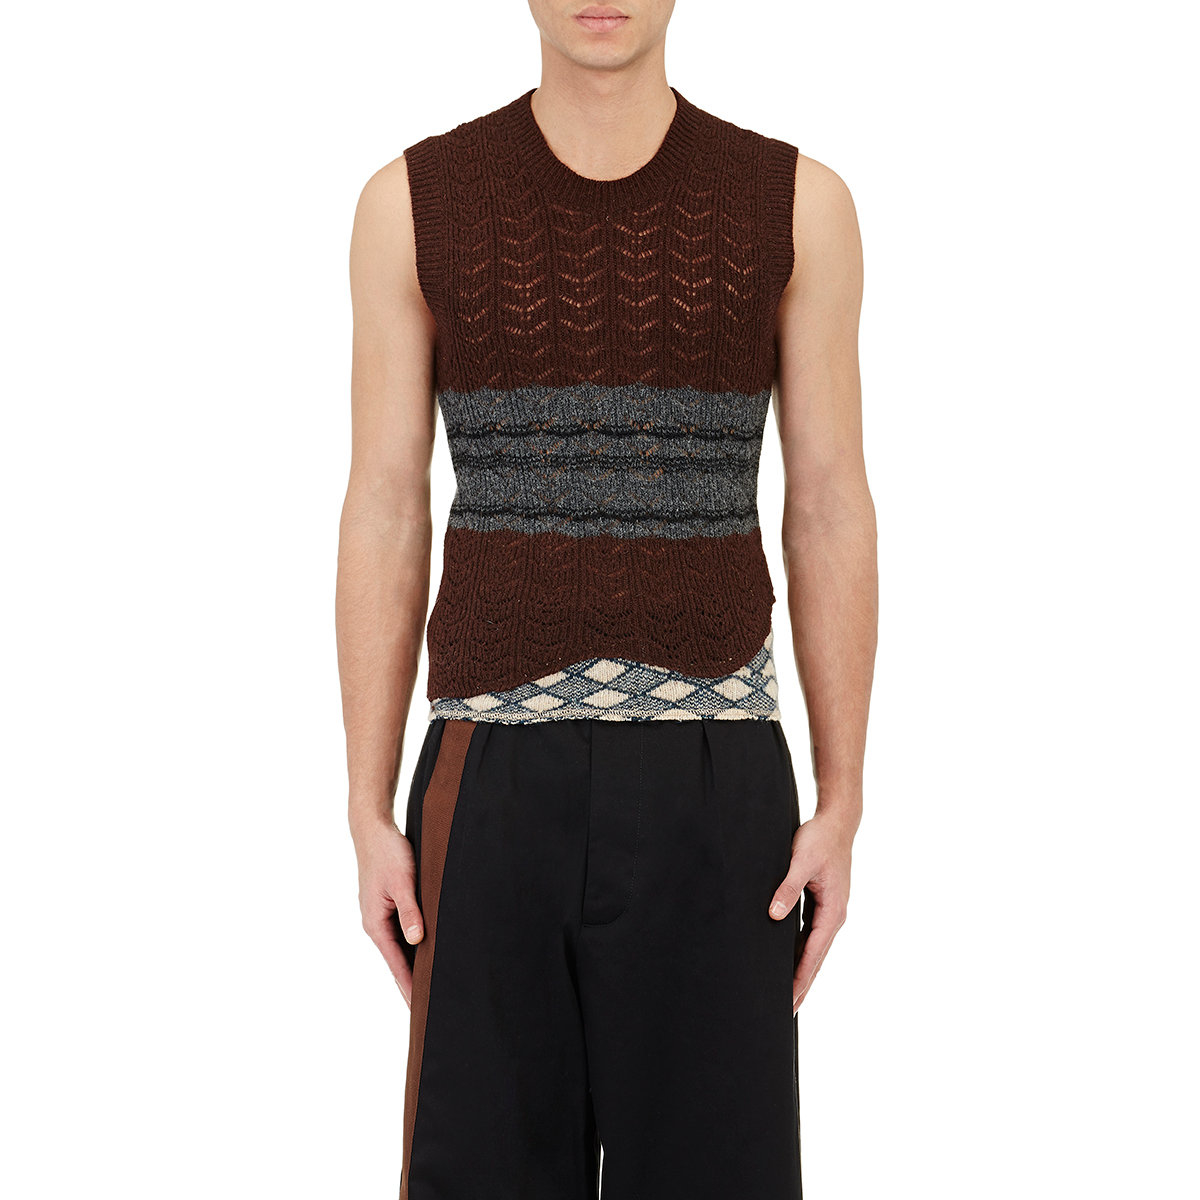 Lacoste Sleeveless Sweater